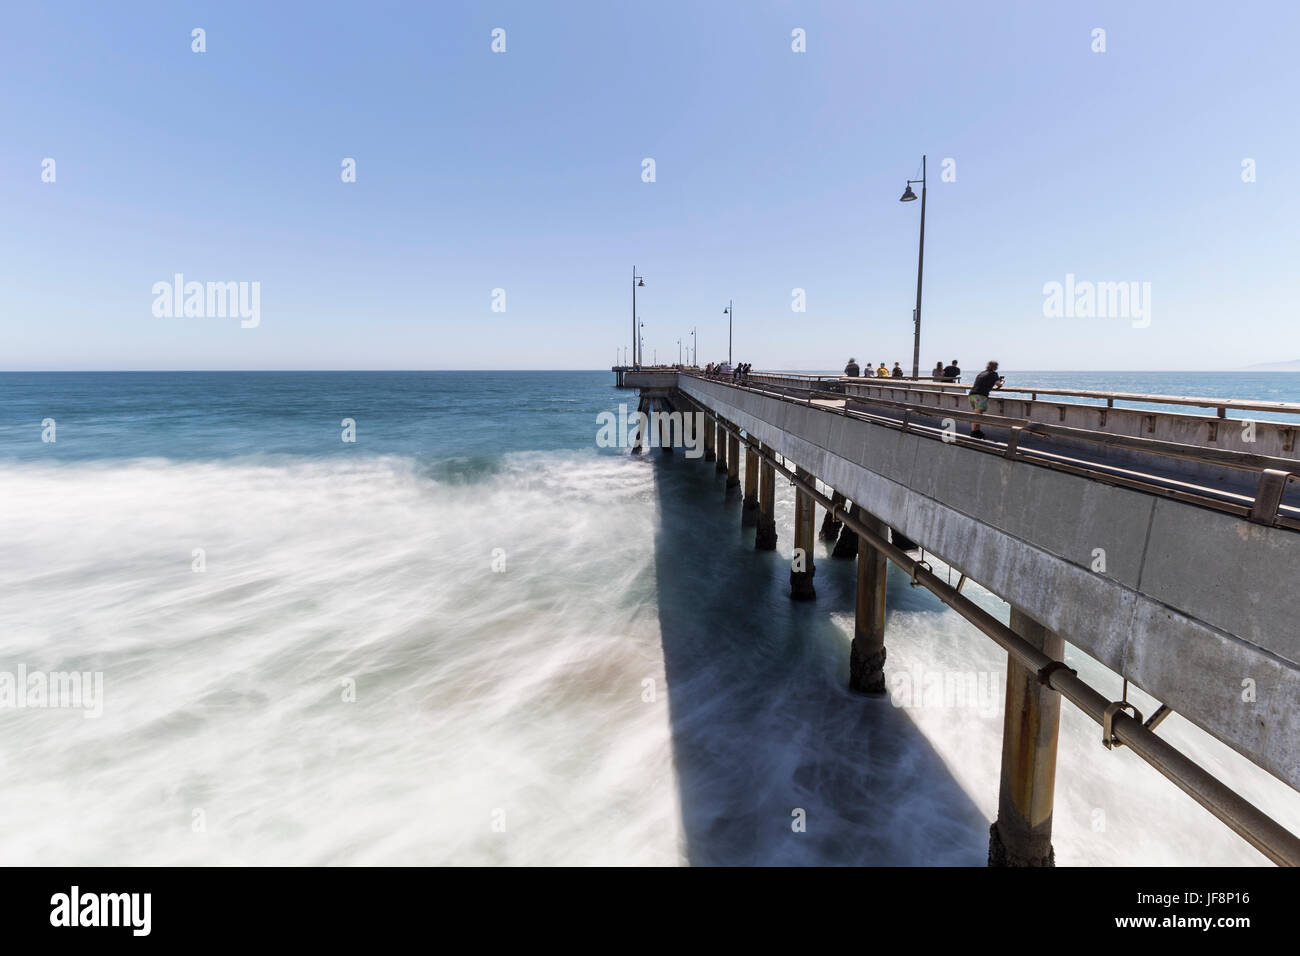 Los Angeles, California, USA - June 26, 2017:  Venice beach fishing pier with motion blur waves. - Stock Image